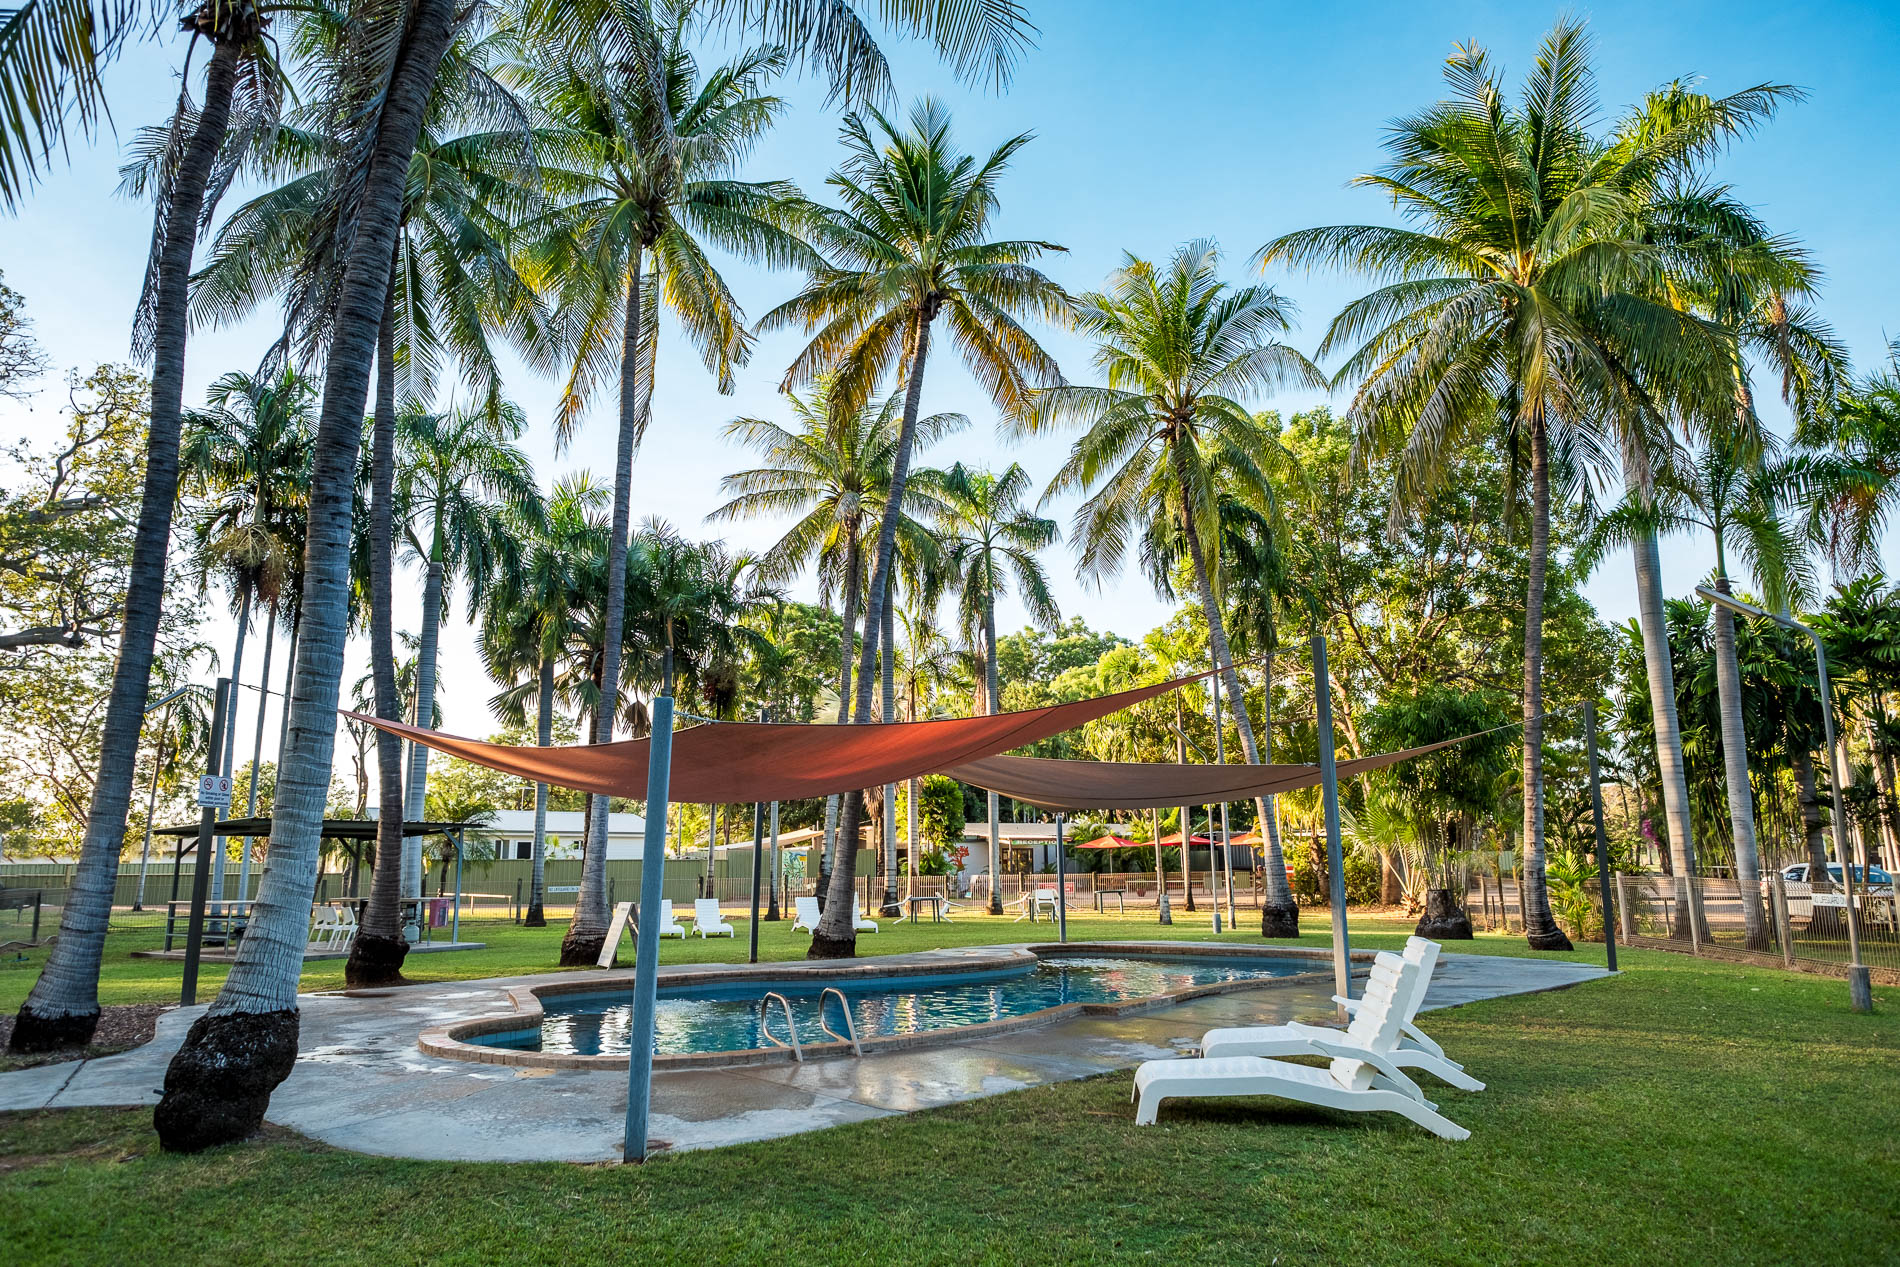 Coconut Palms Tropical Setting Pool